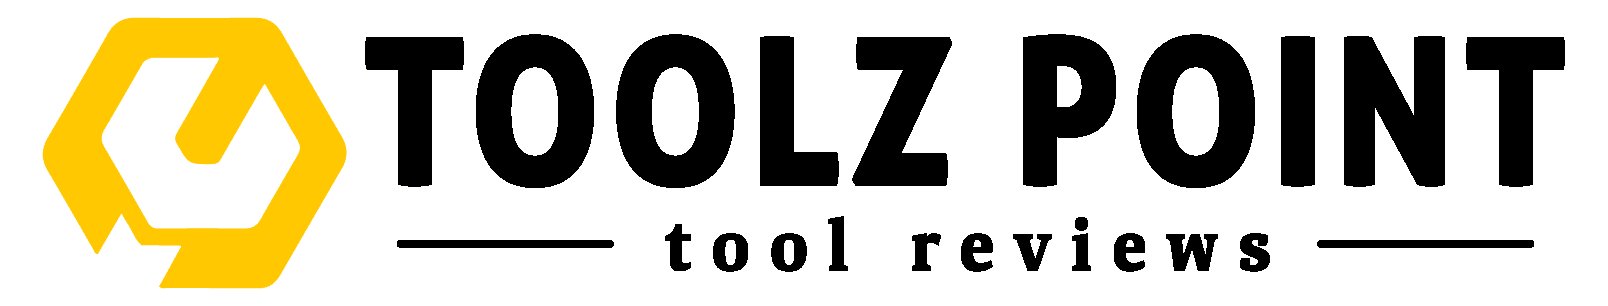 Toolz Point logo